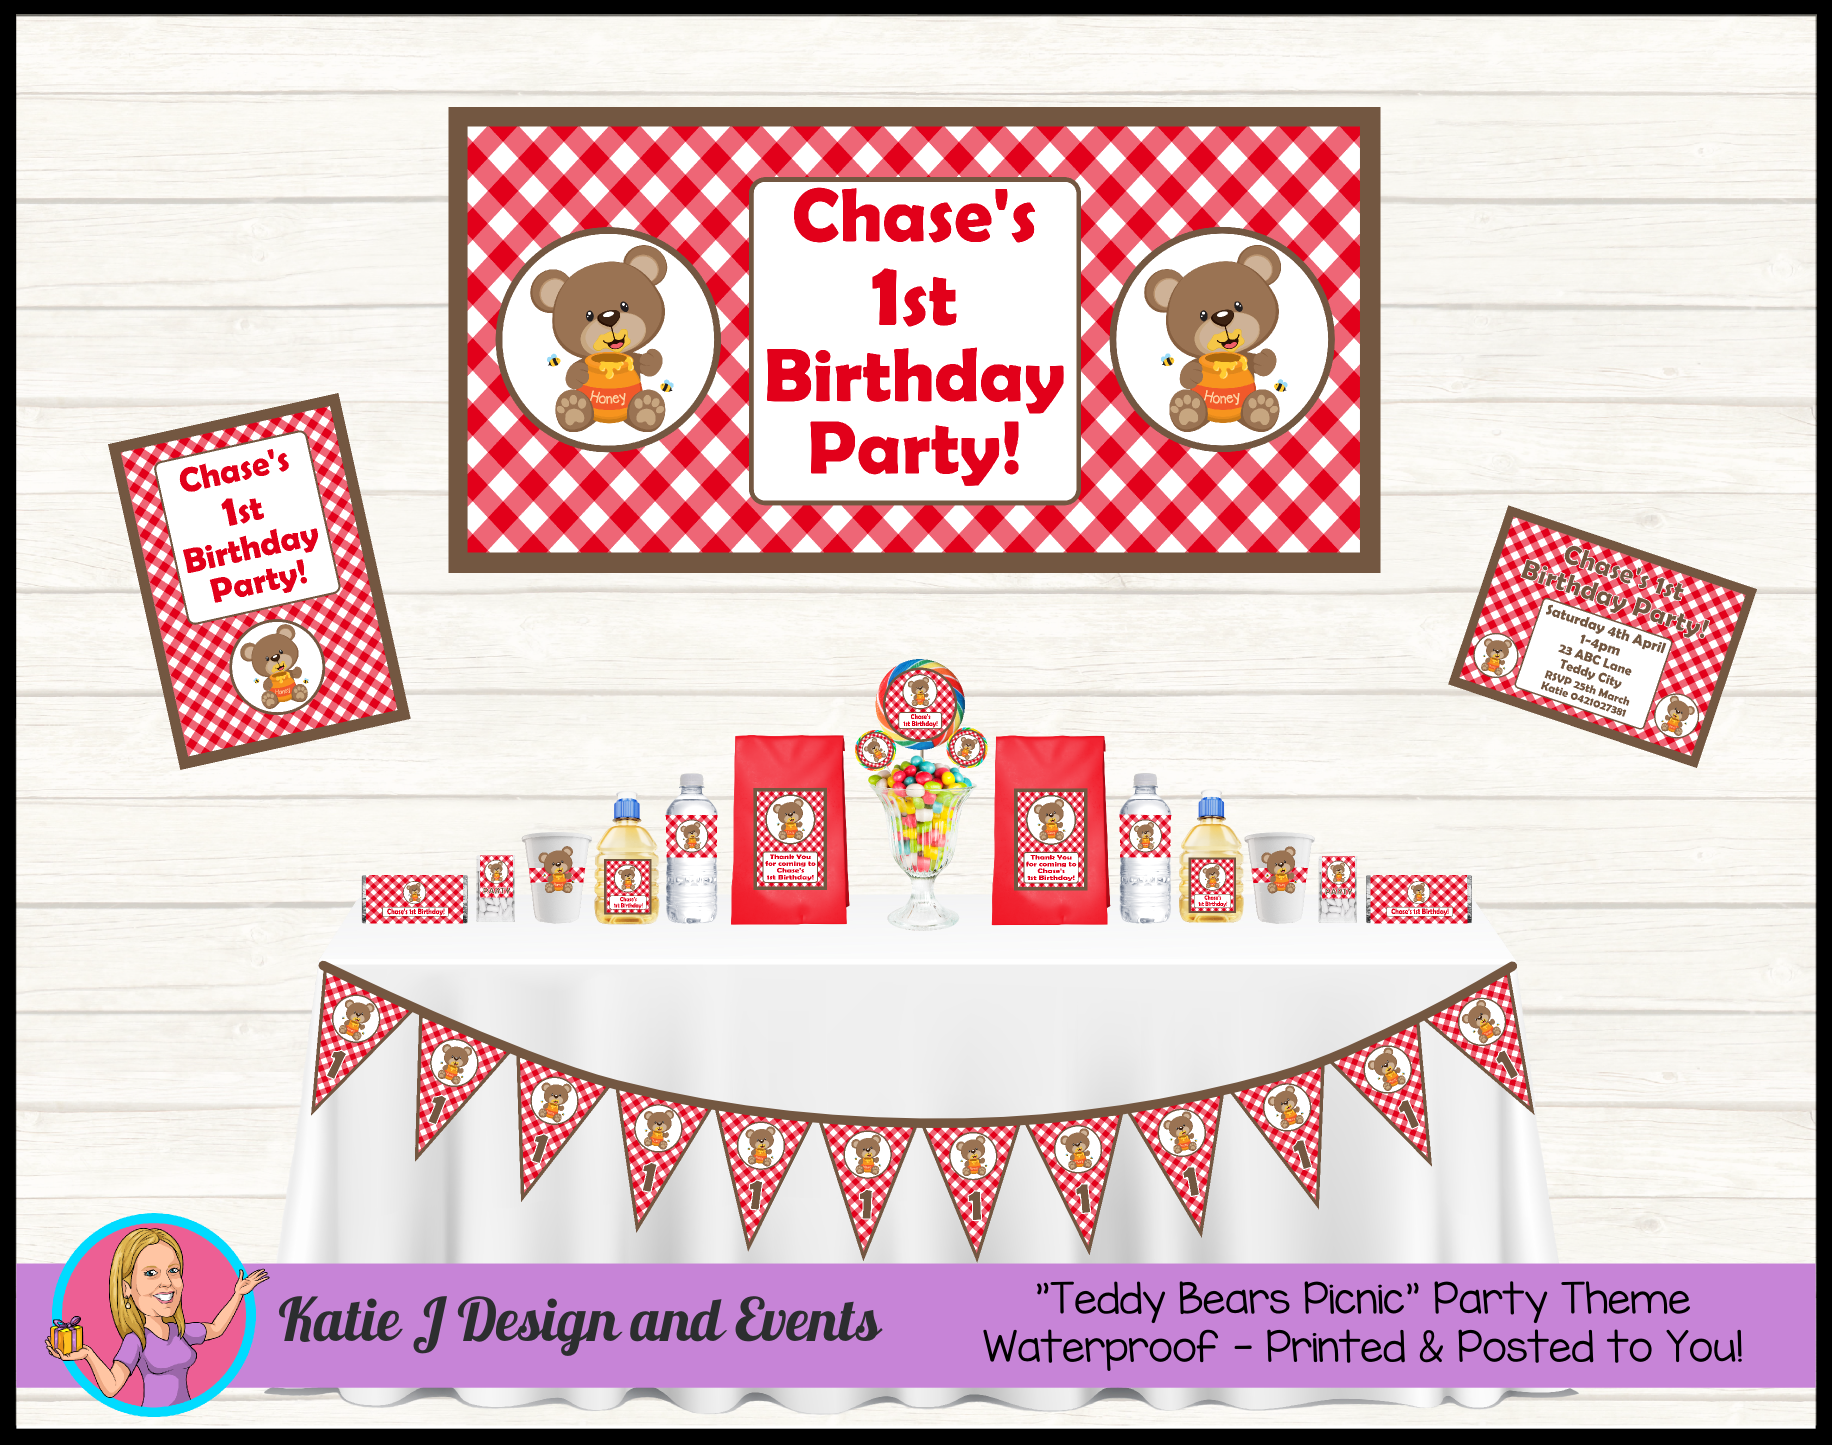 Teddy Bears Picnic Personalised Birthday Party Decorations Supplies Packs Shop Online Australia Banners Bunting Wall Display